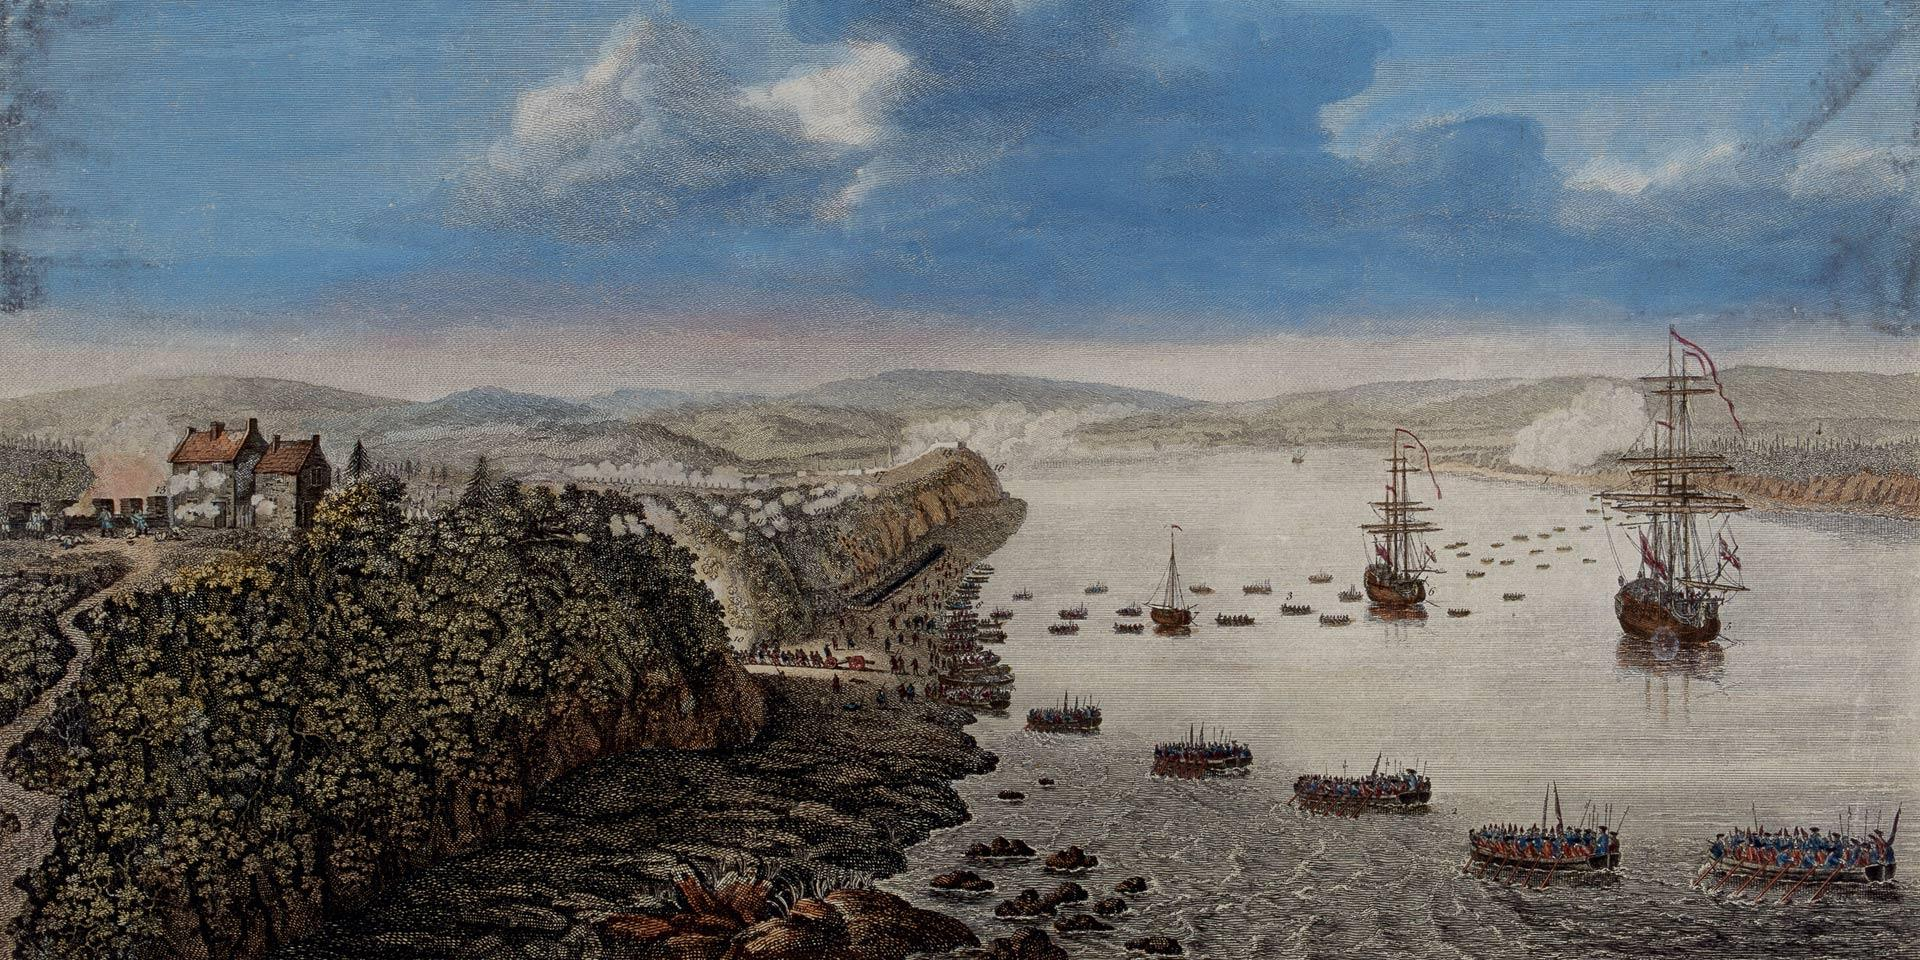 The British landing at Quebec, 1759